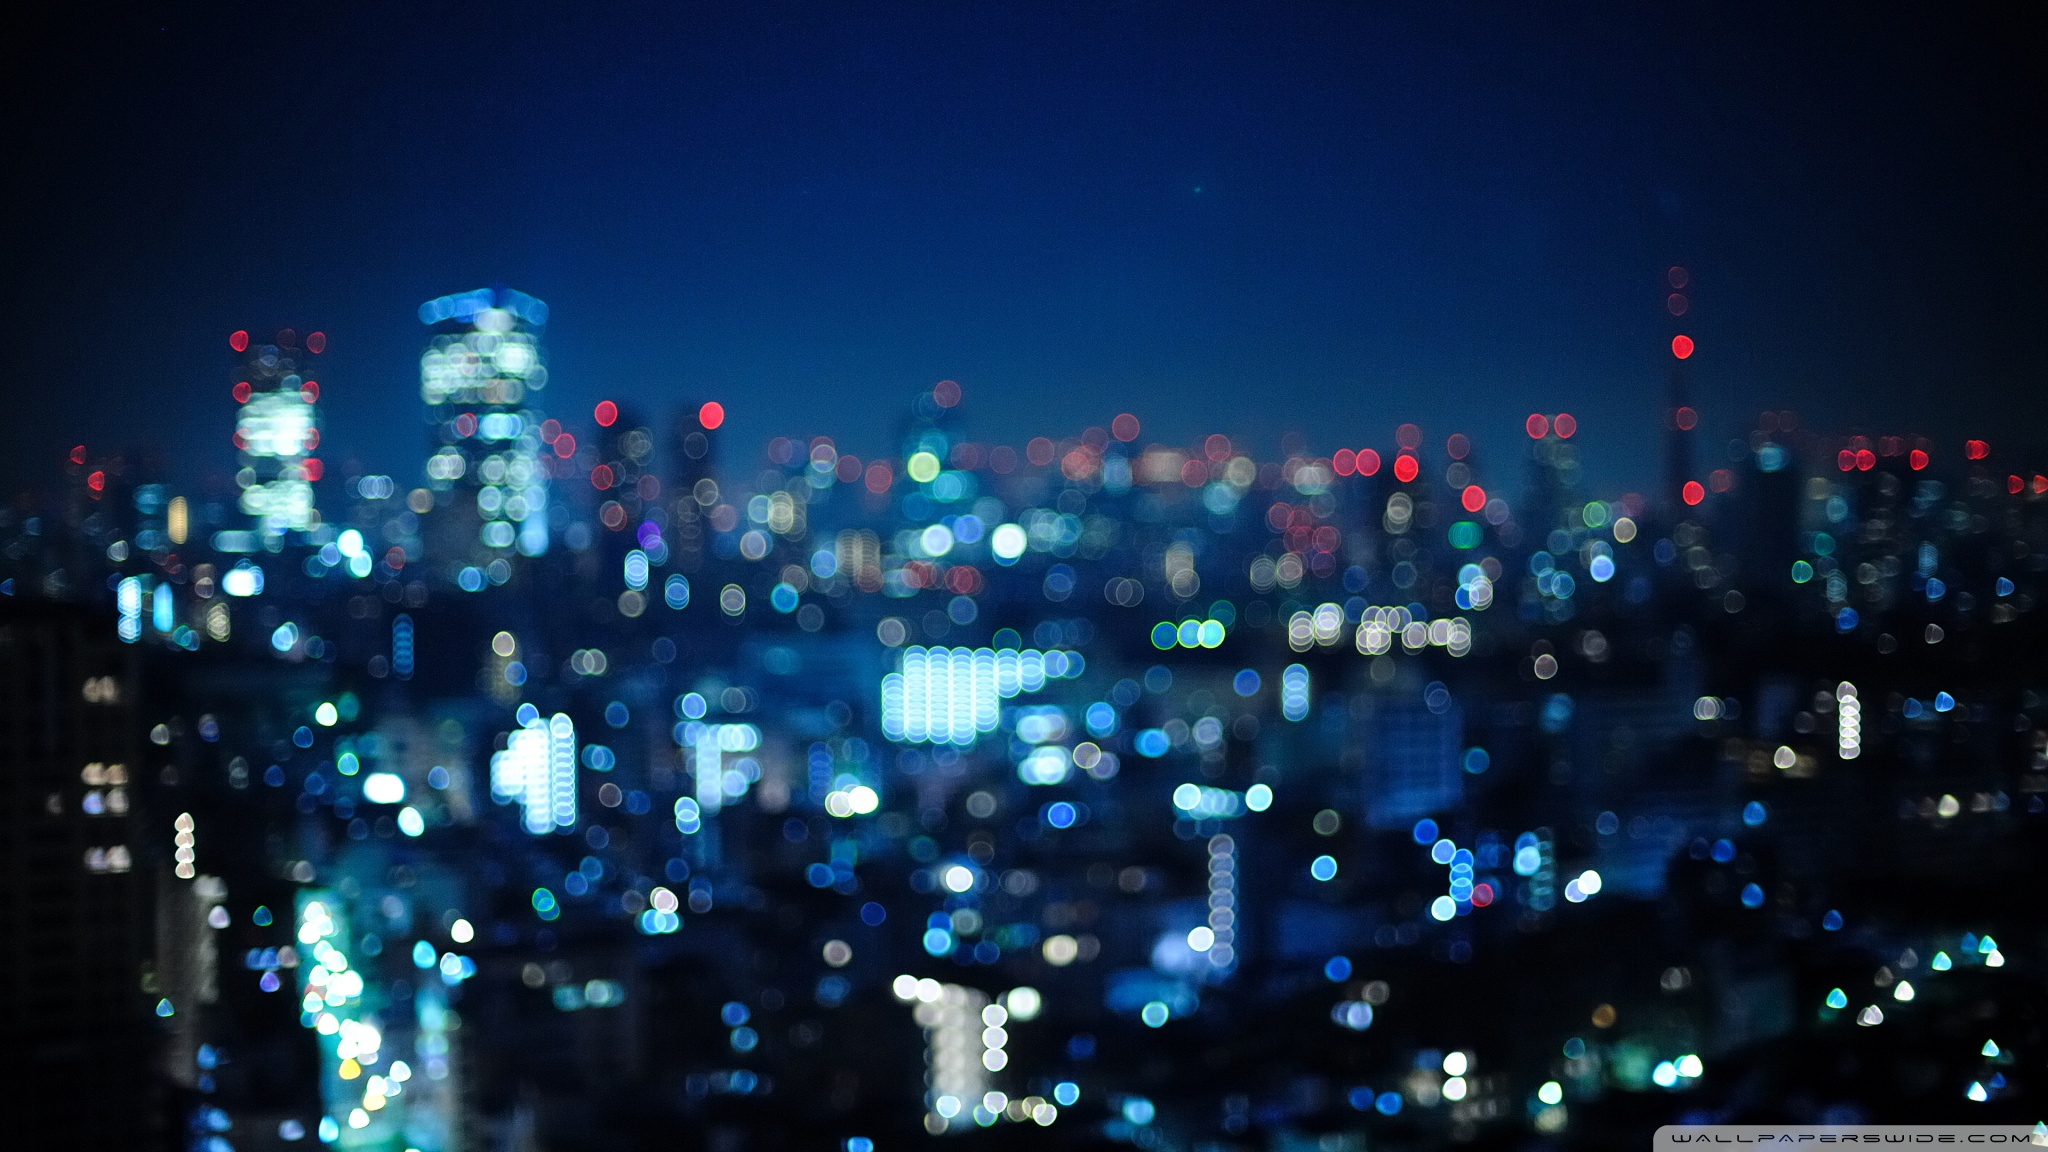 Tokyo, Japan - Bokeh City HD desktop wallpaper : High Definition